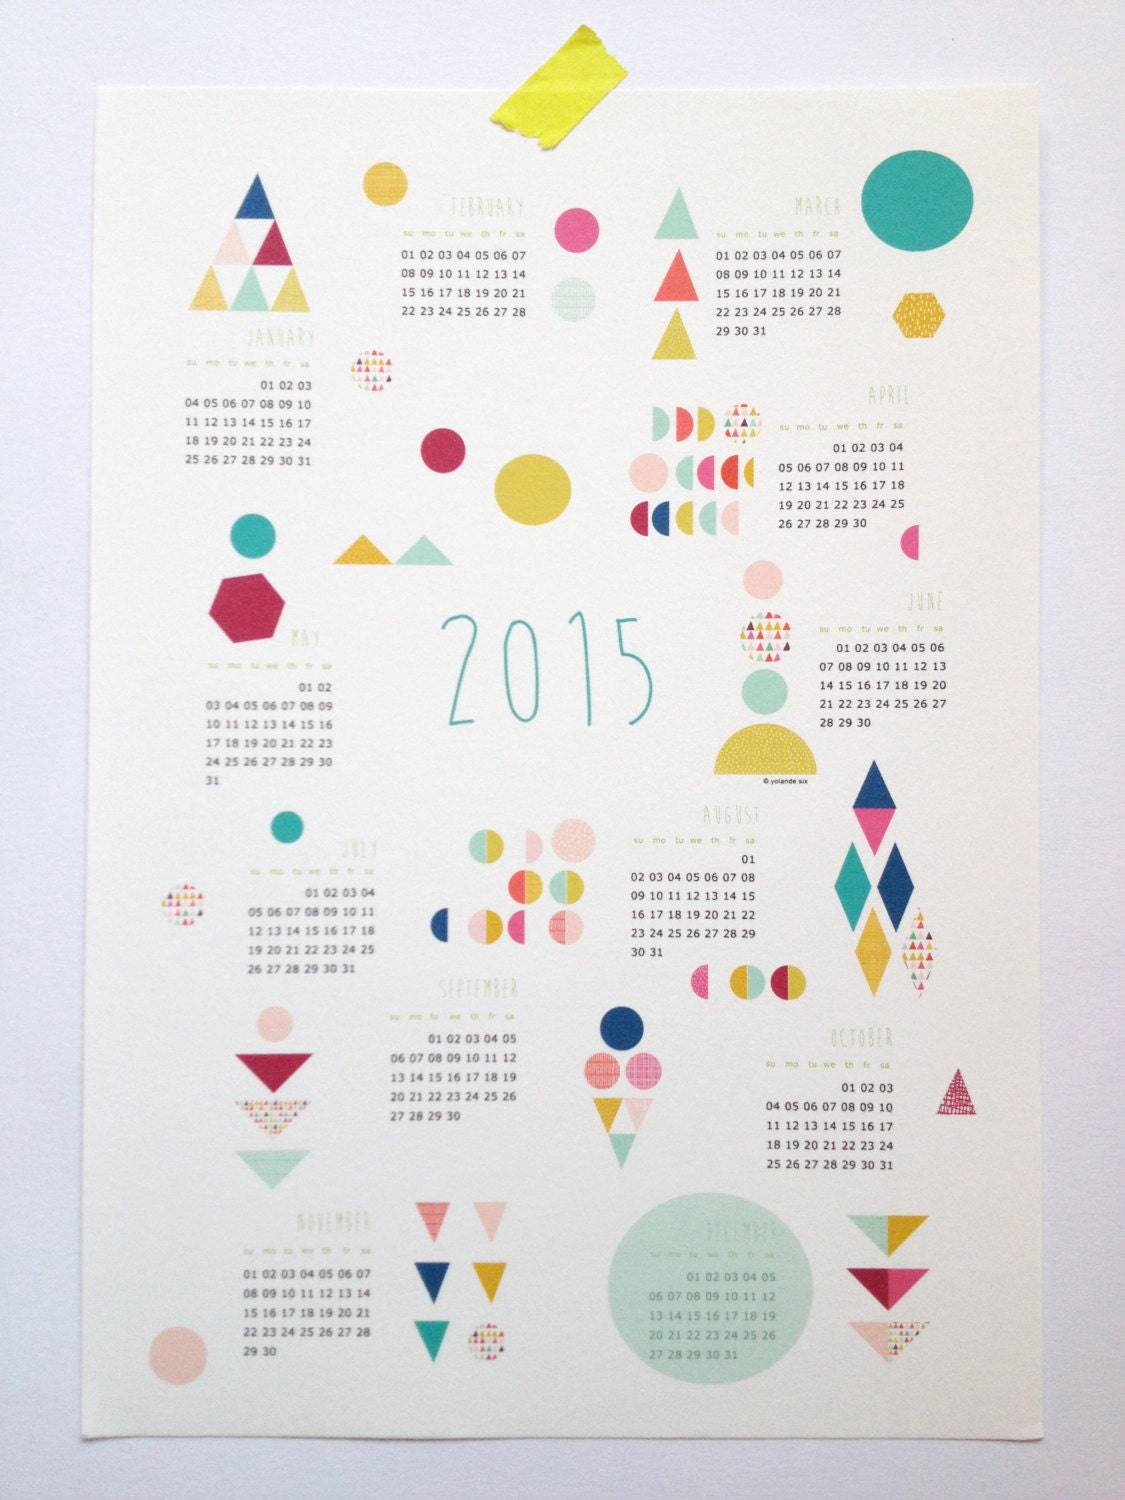 Calendar Posters 2015 : Printable calendar poster size a pdf geometric forms